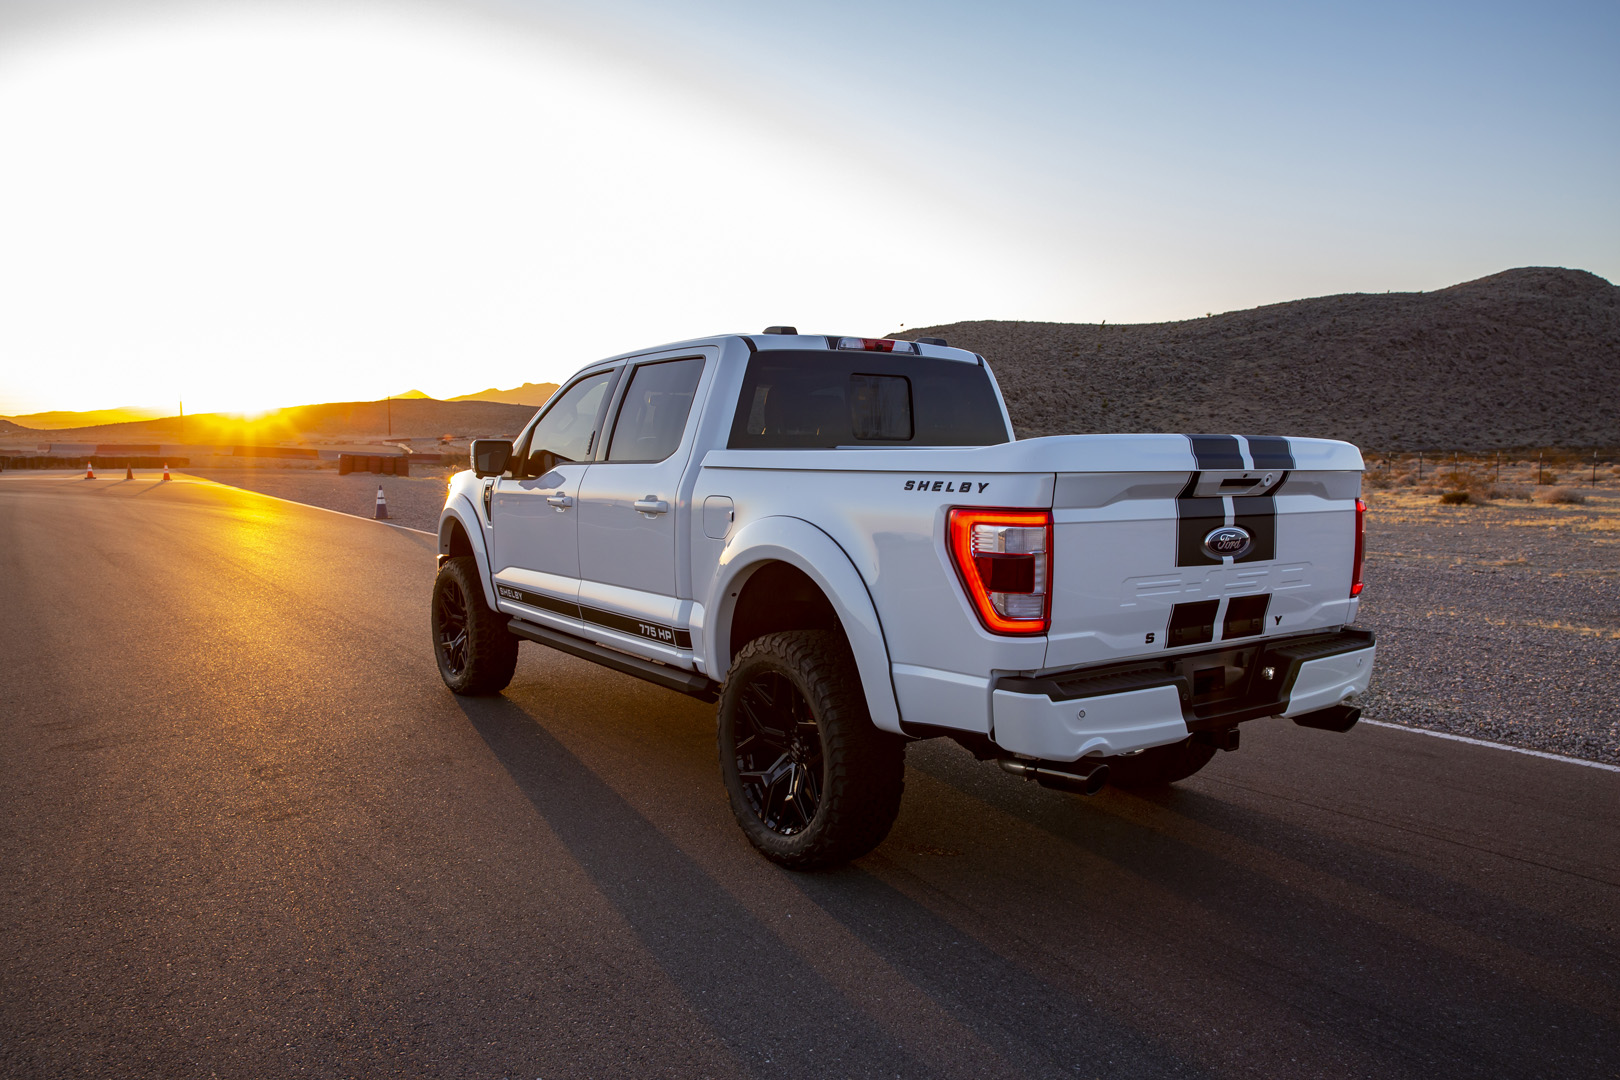 shelby-american-ford-f-150-pickup-2-credit-shelby-smerican